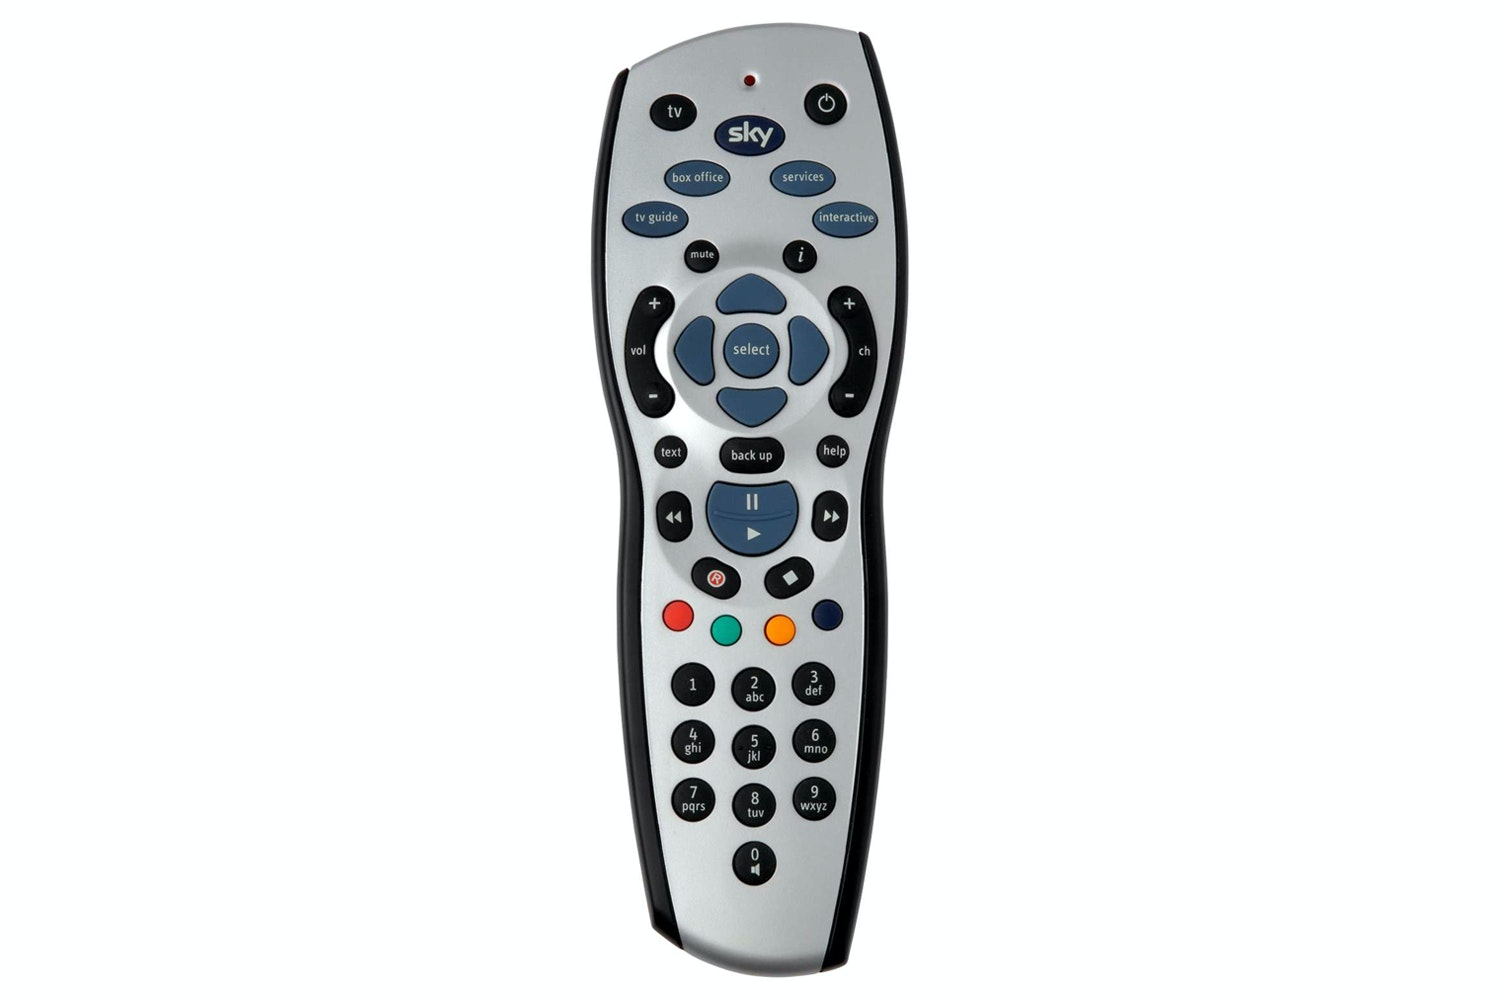 Sky Plus HD Remote Control | SKY120